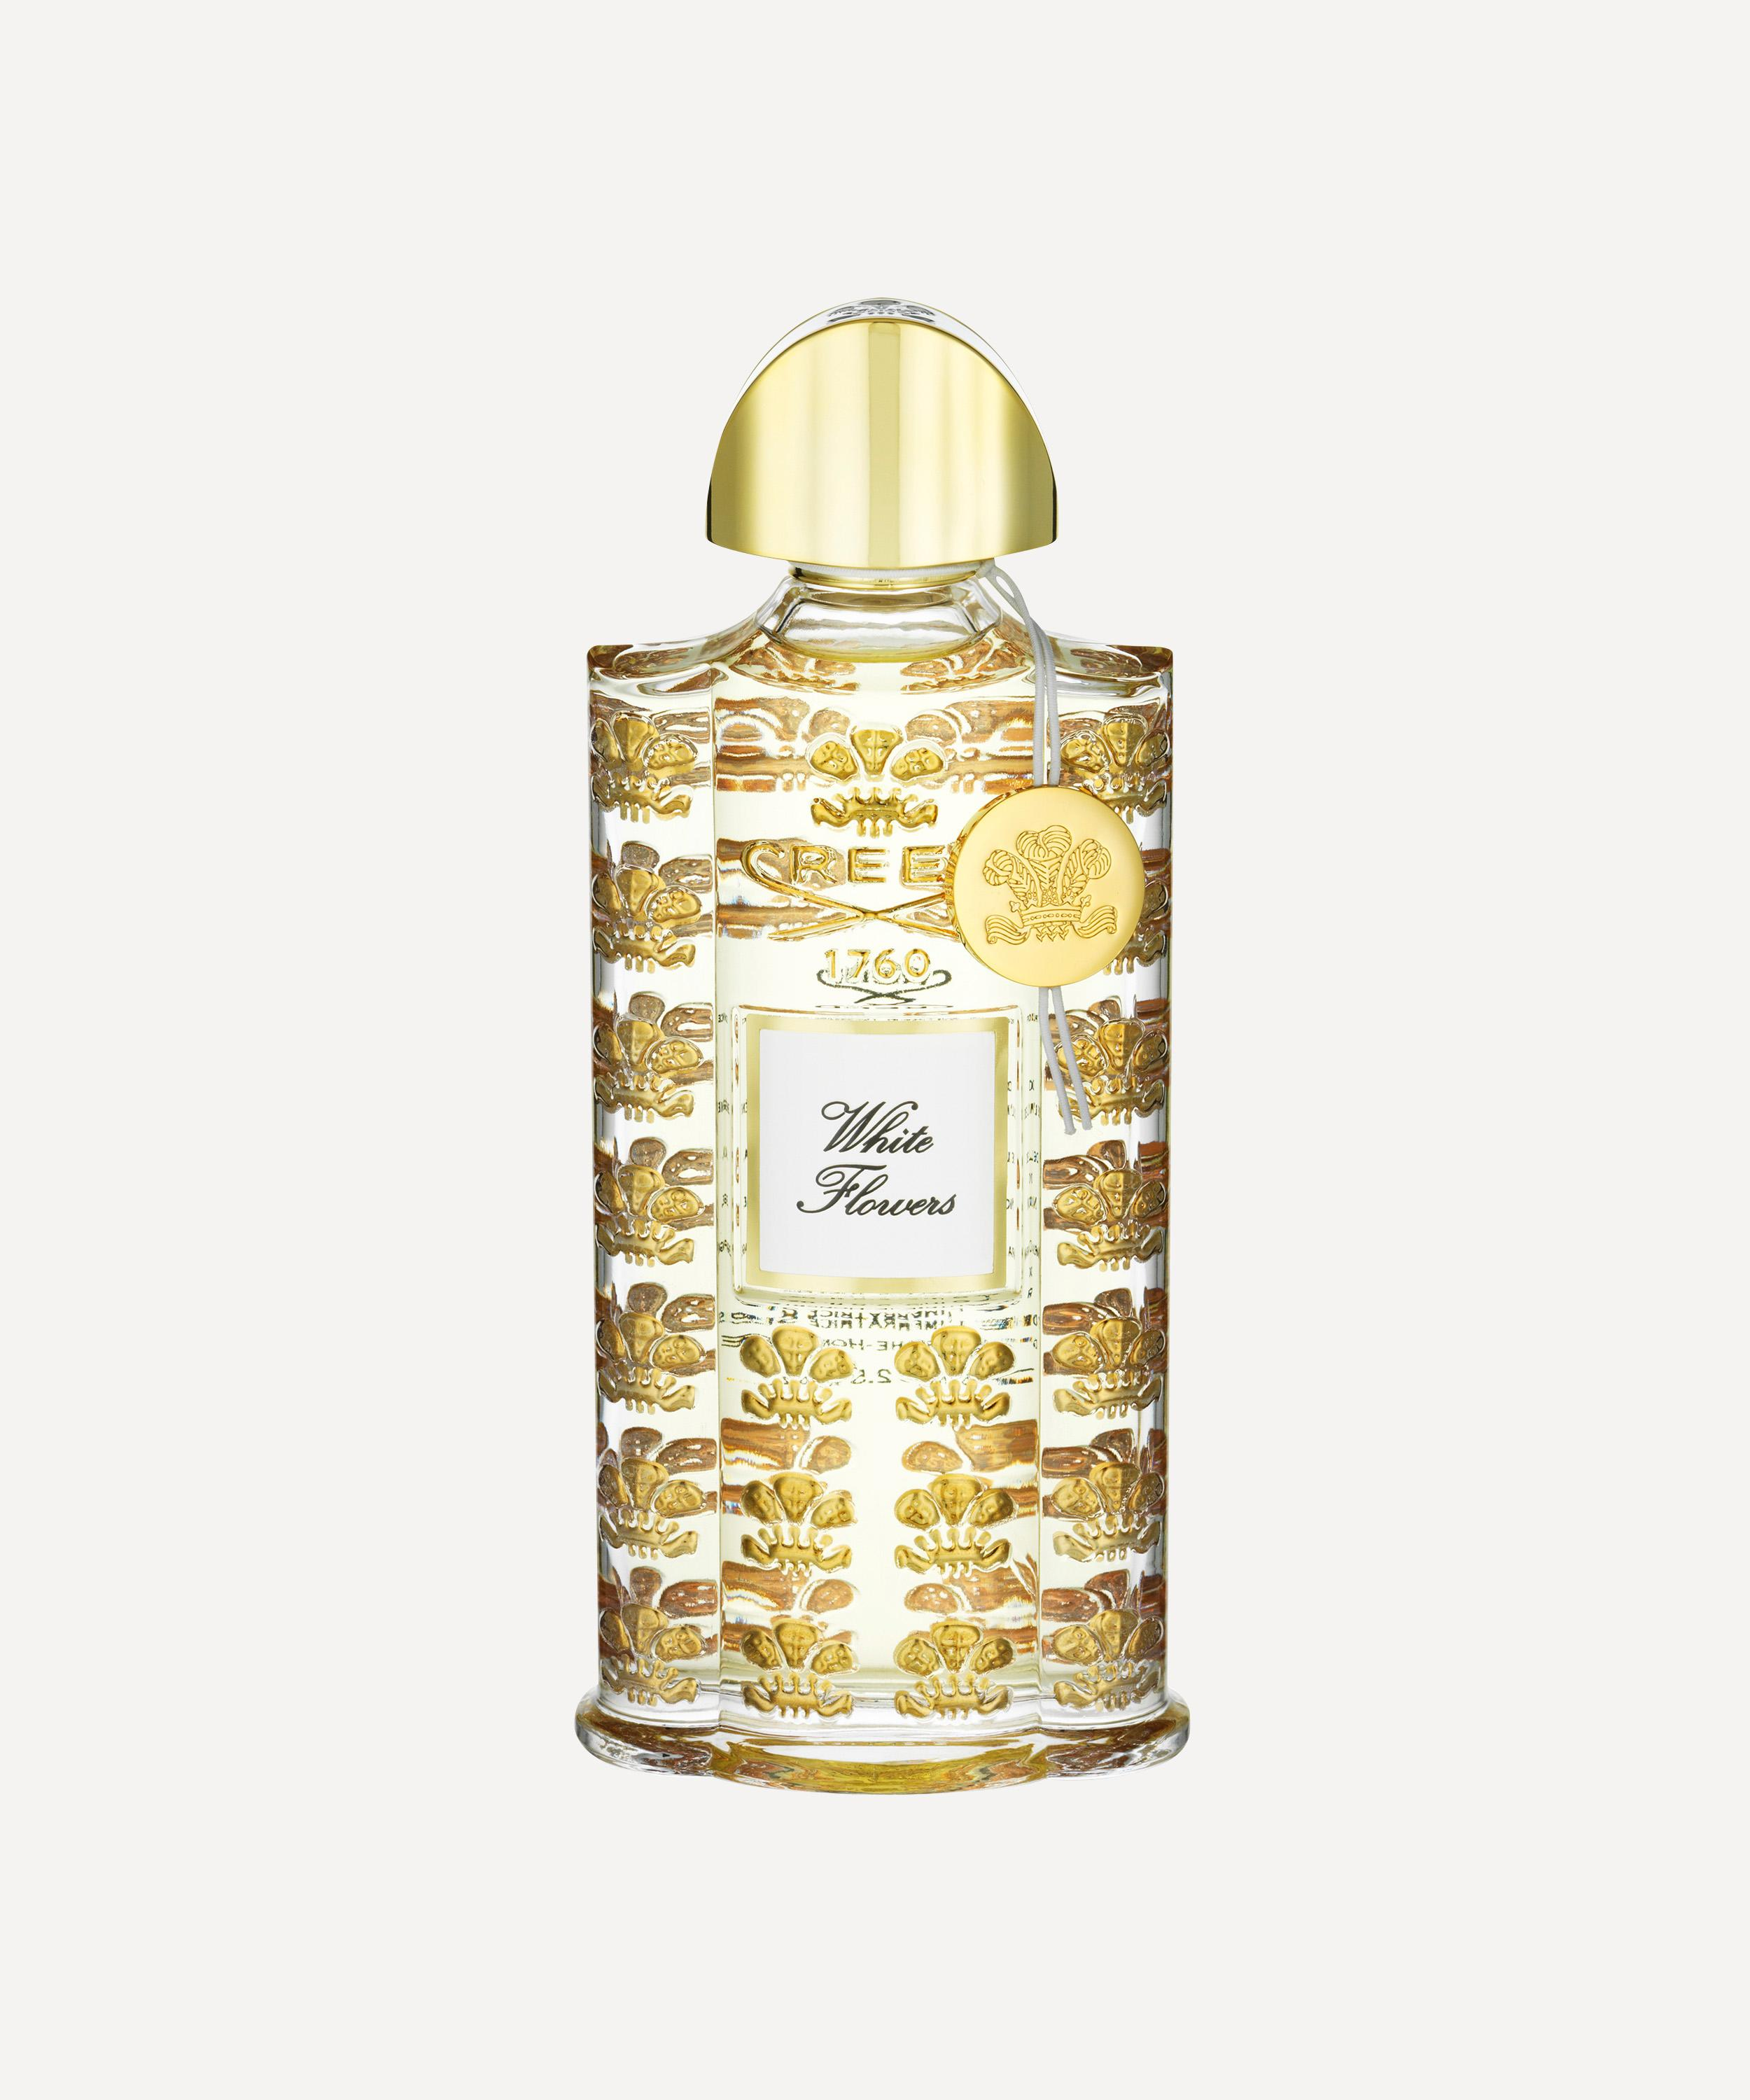 Royal exclusives white flowers 75ml liberty london royal exclusives white flowers 75ml mightylinksfo